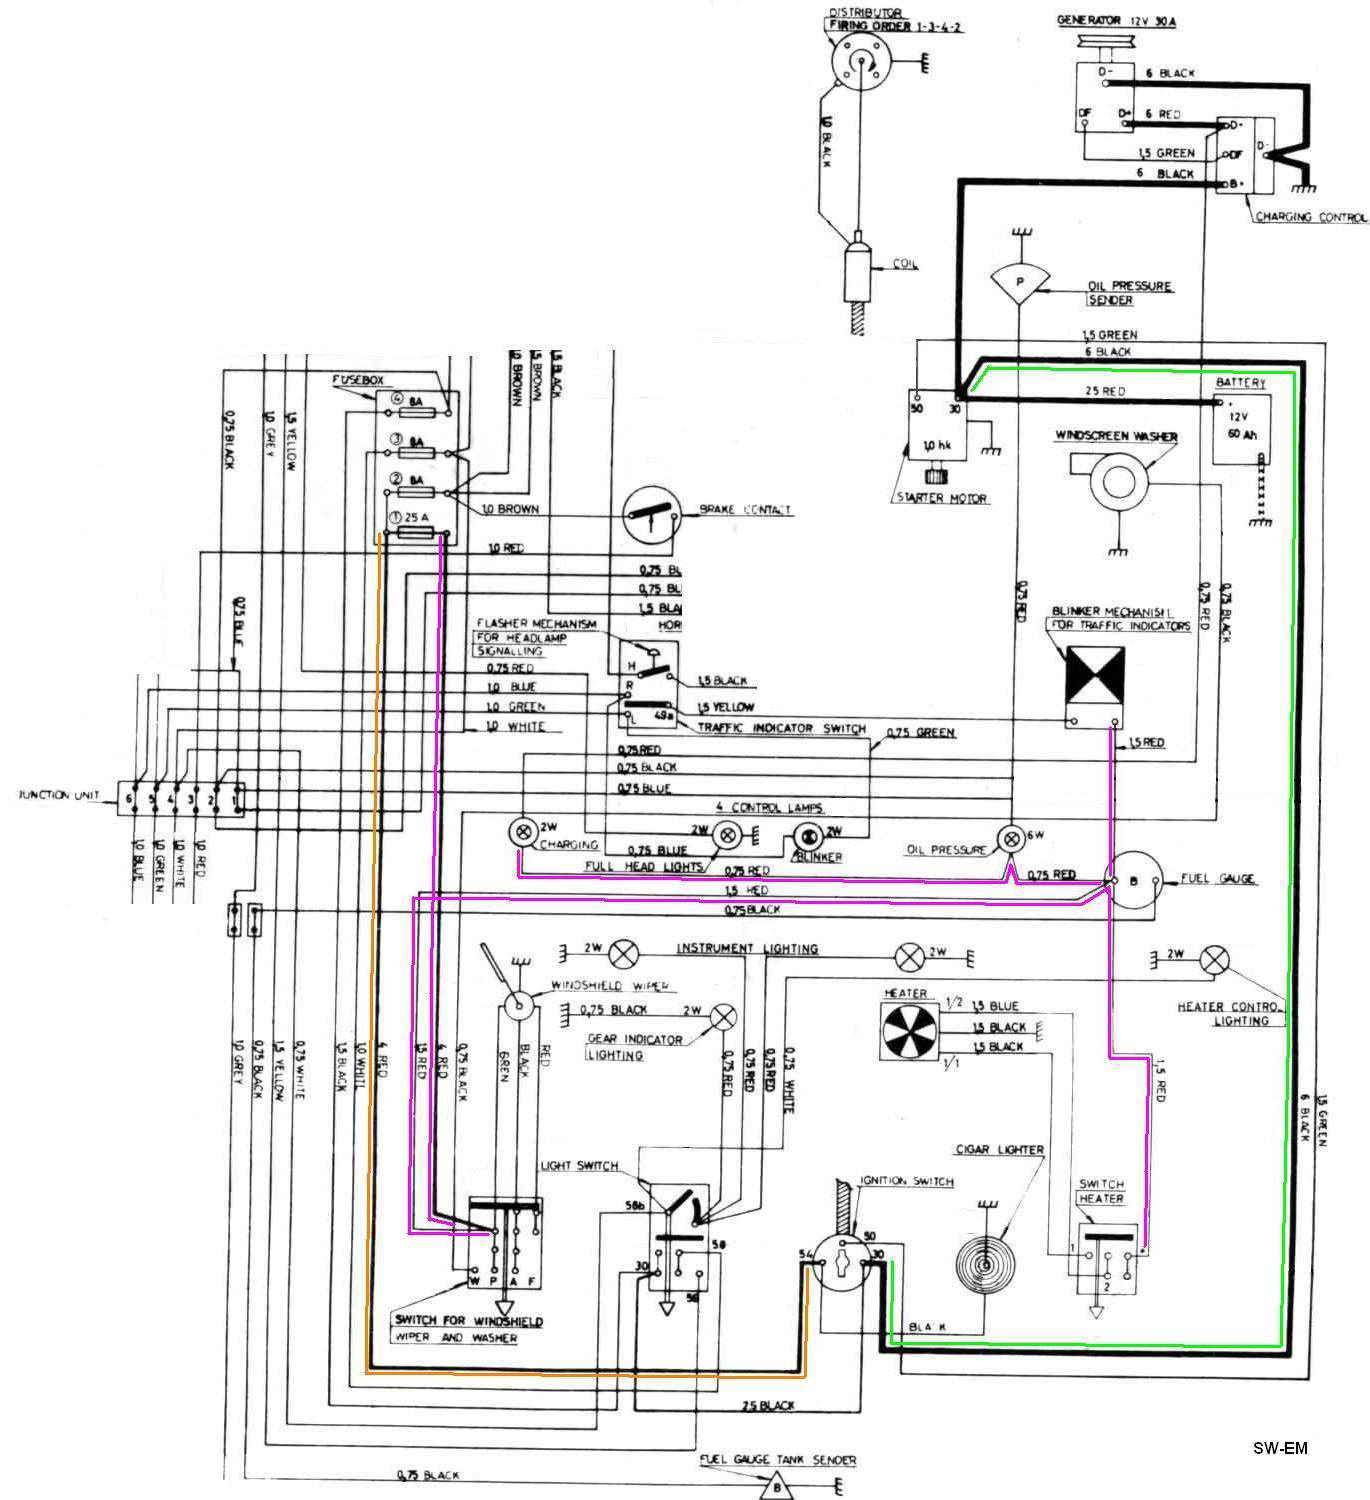 Volvo 940 Wiring Diagram Radio Opinions About 1991 122 Detailed Schematics Rh Lelandlutheran Com 1993 630